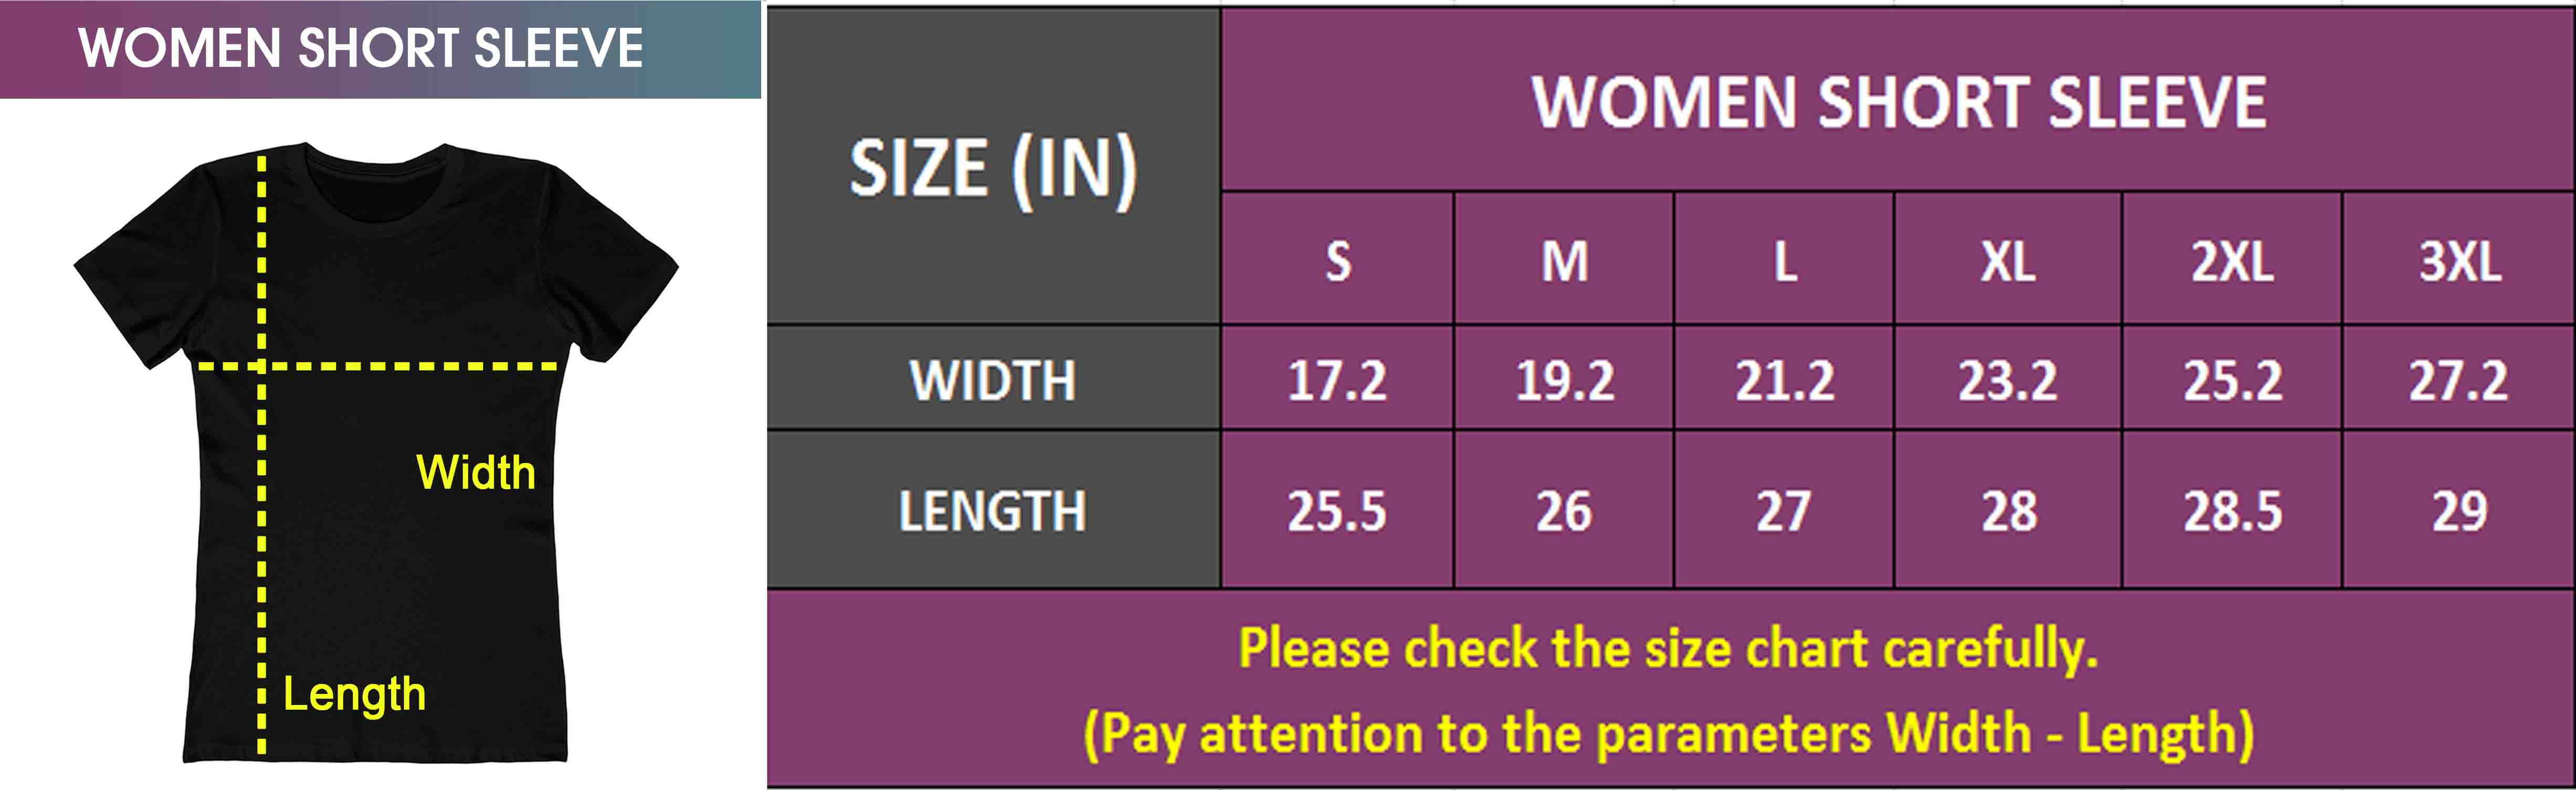 Women Short Sleeve | Size Chart